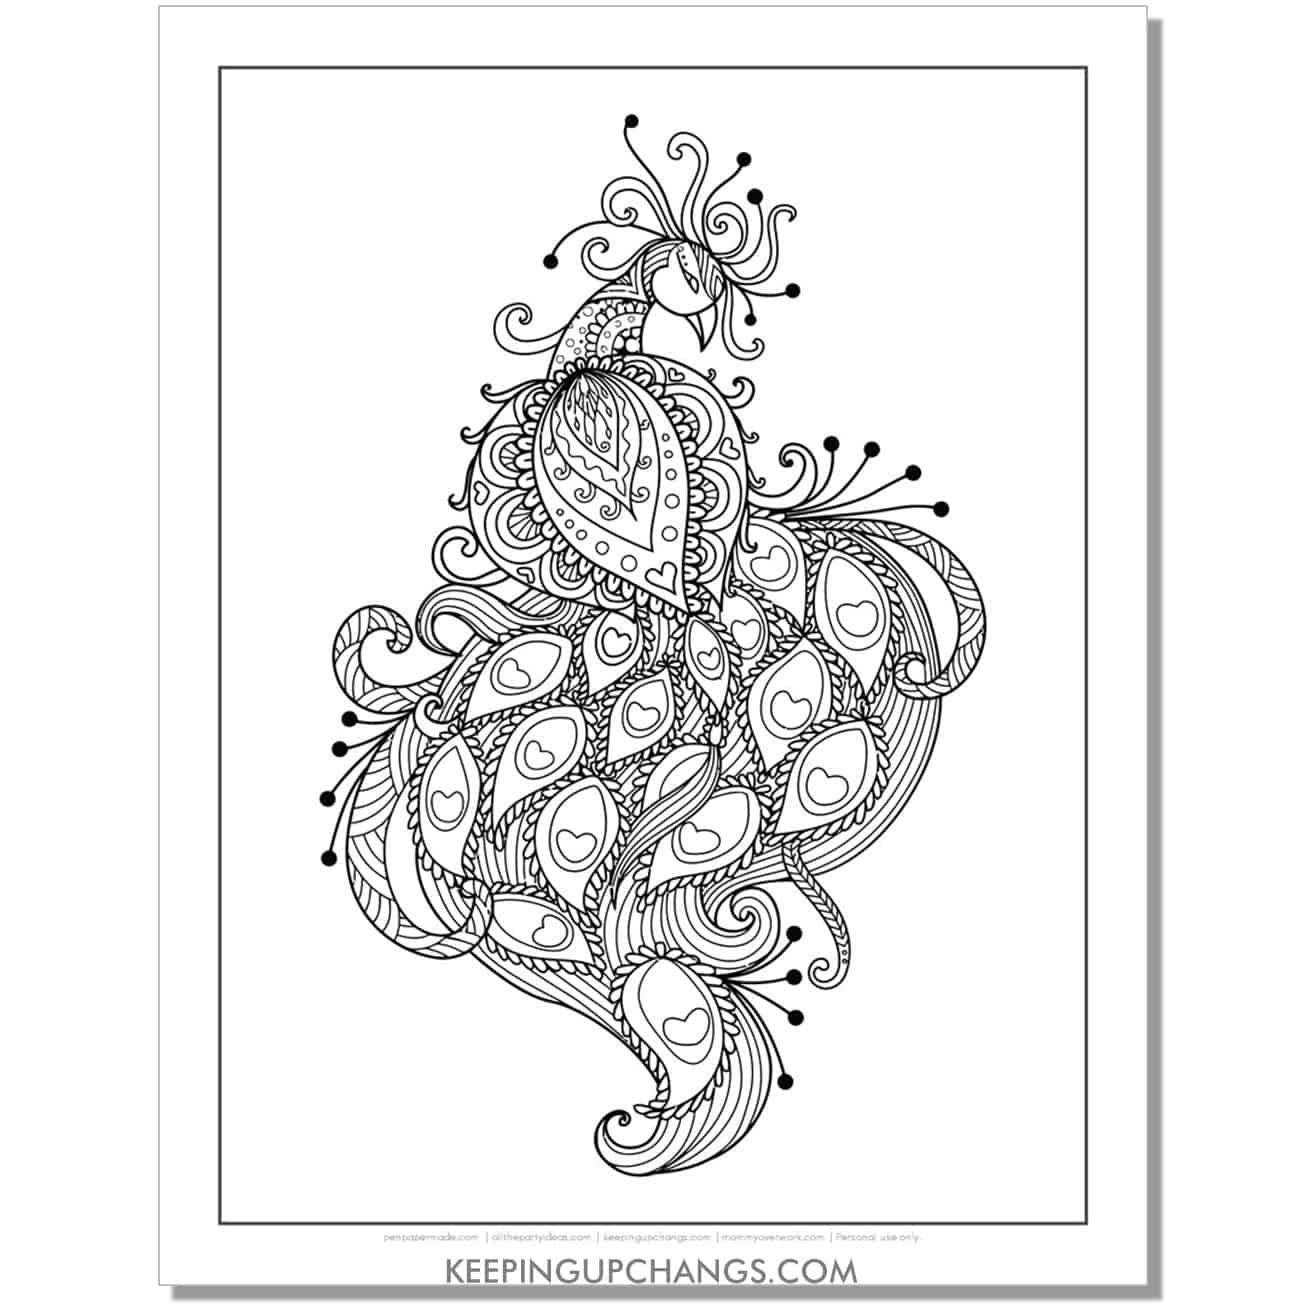 intricate peacock coloring page with hearts.